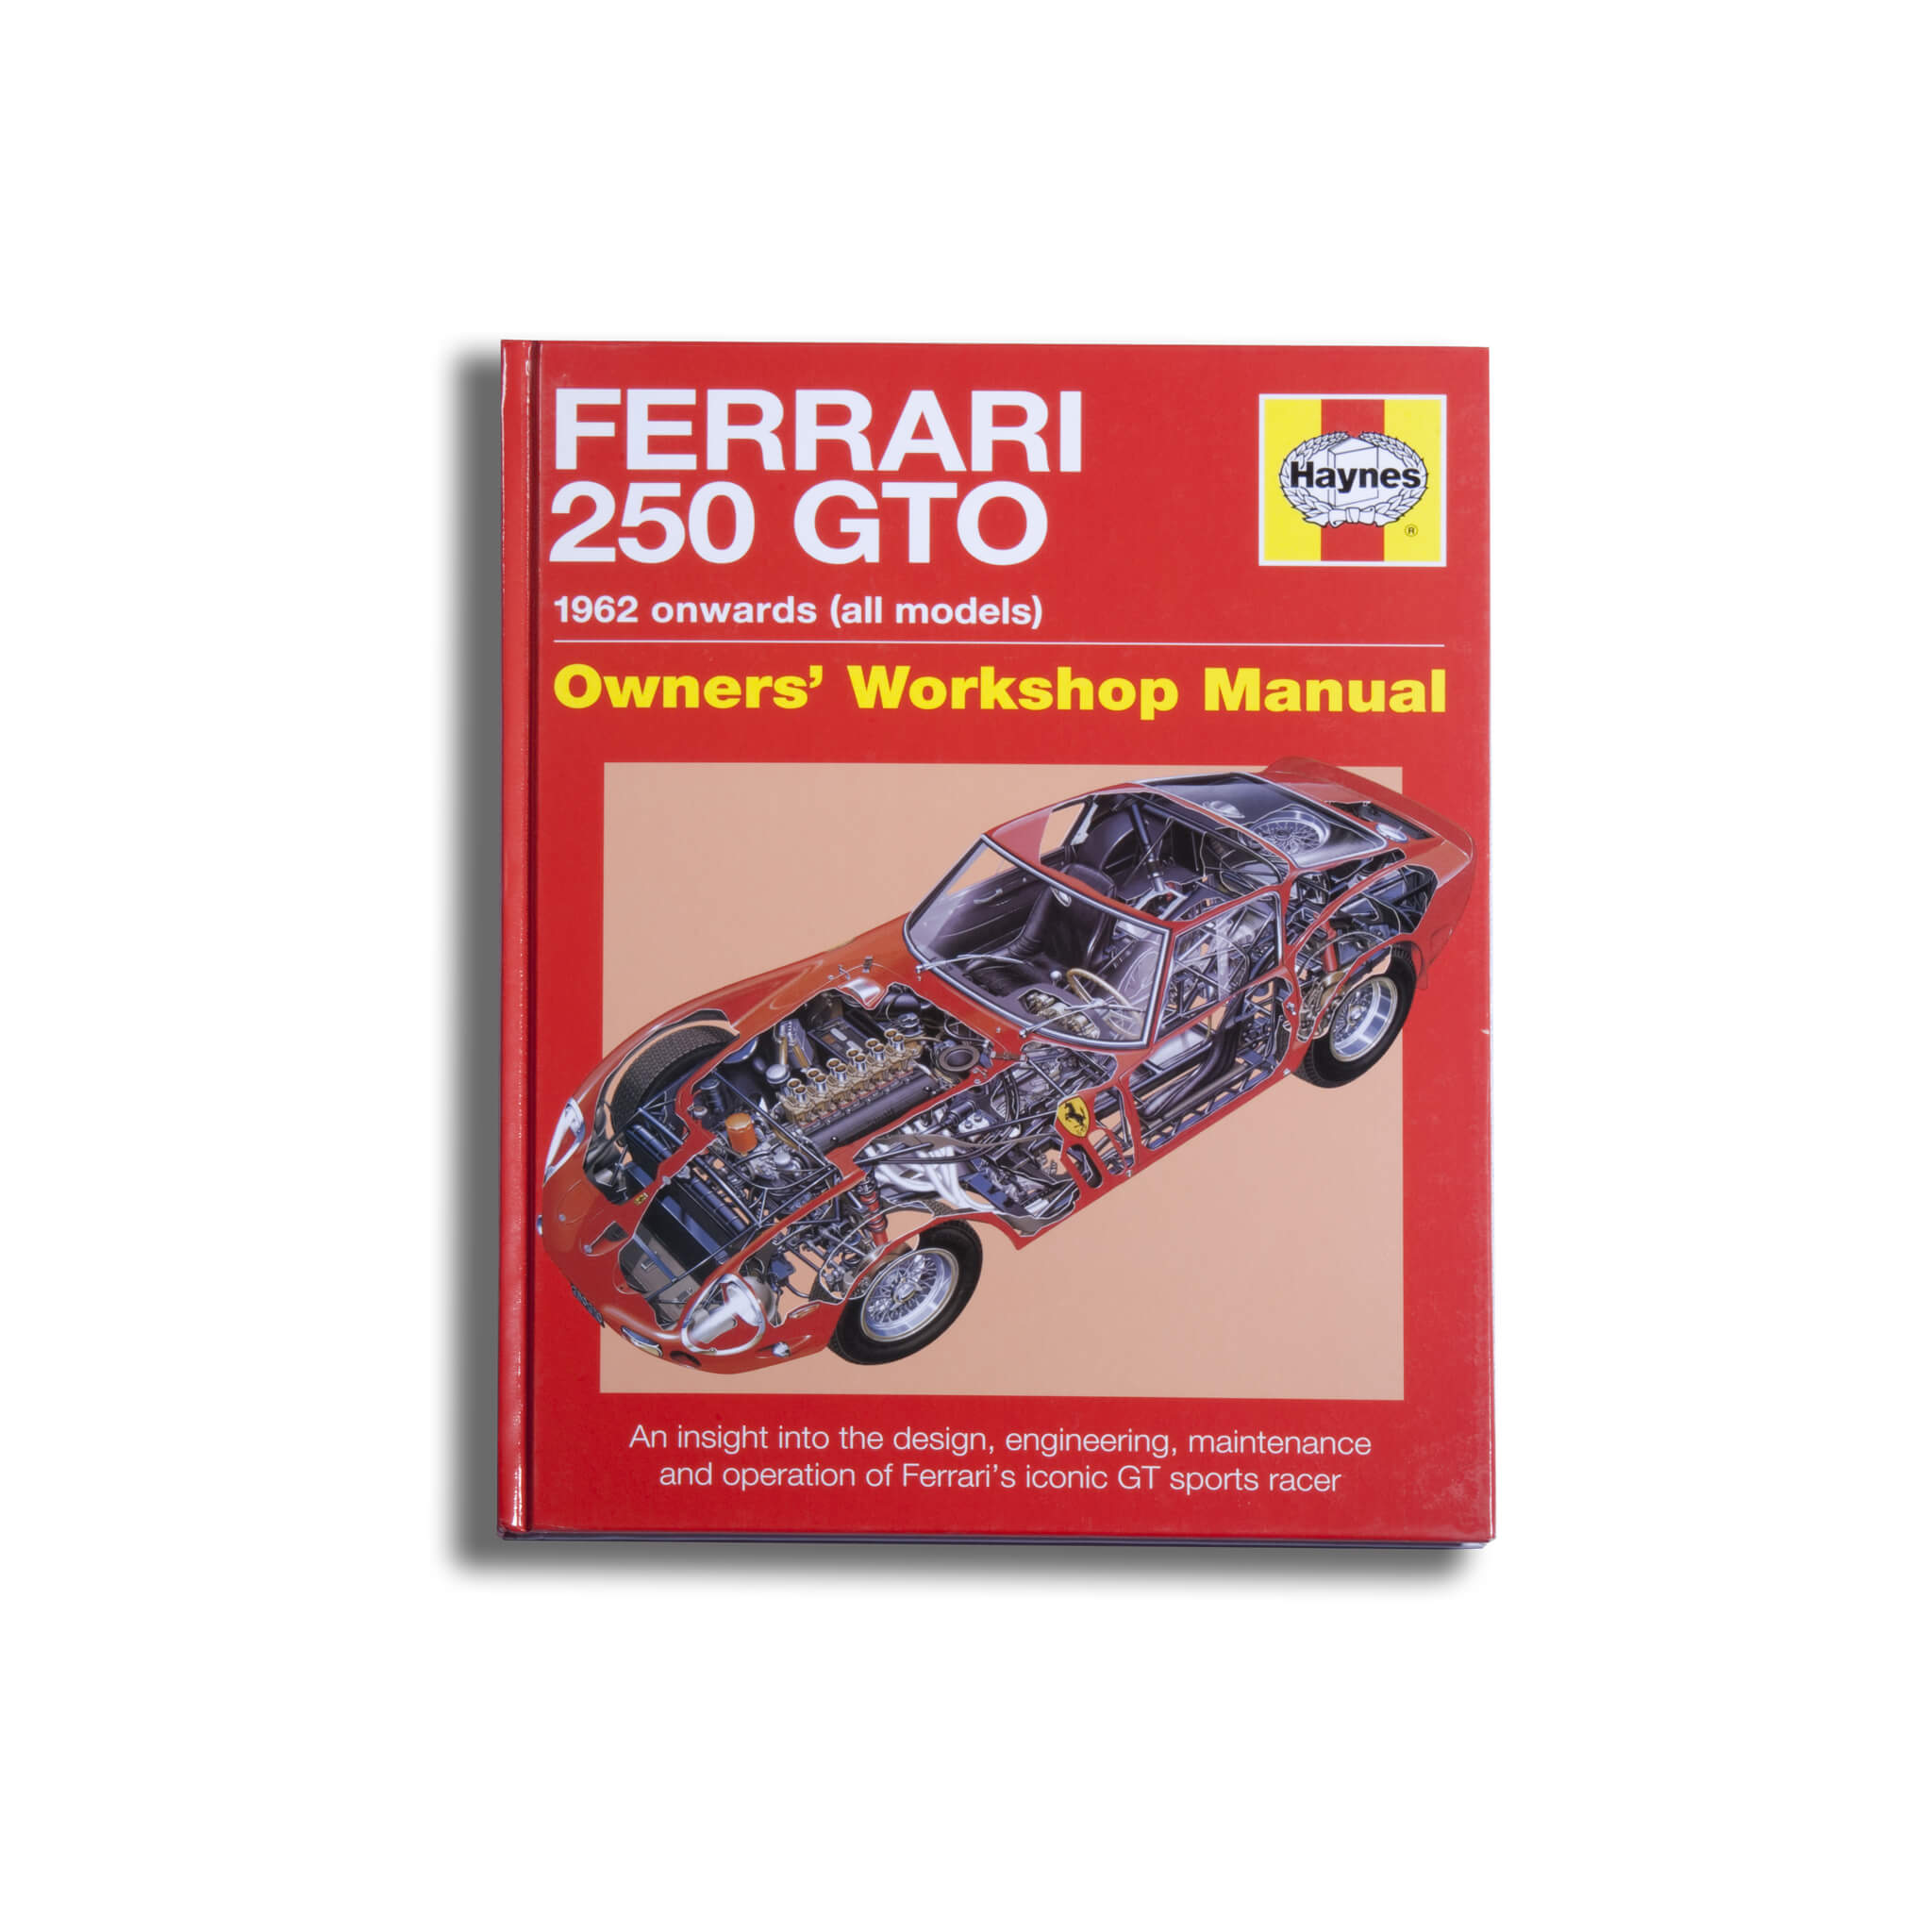 Ferrari 250 Gto Owners Workshop Manual Book